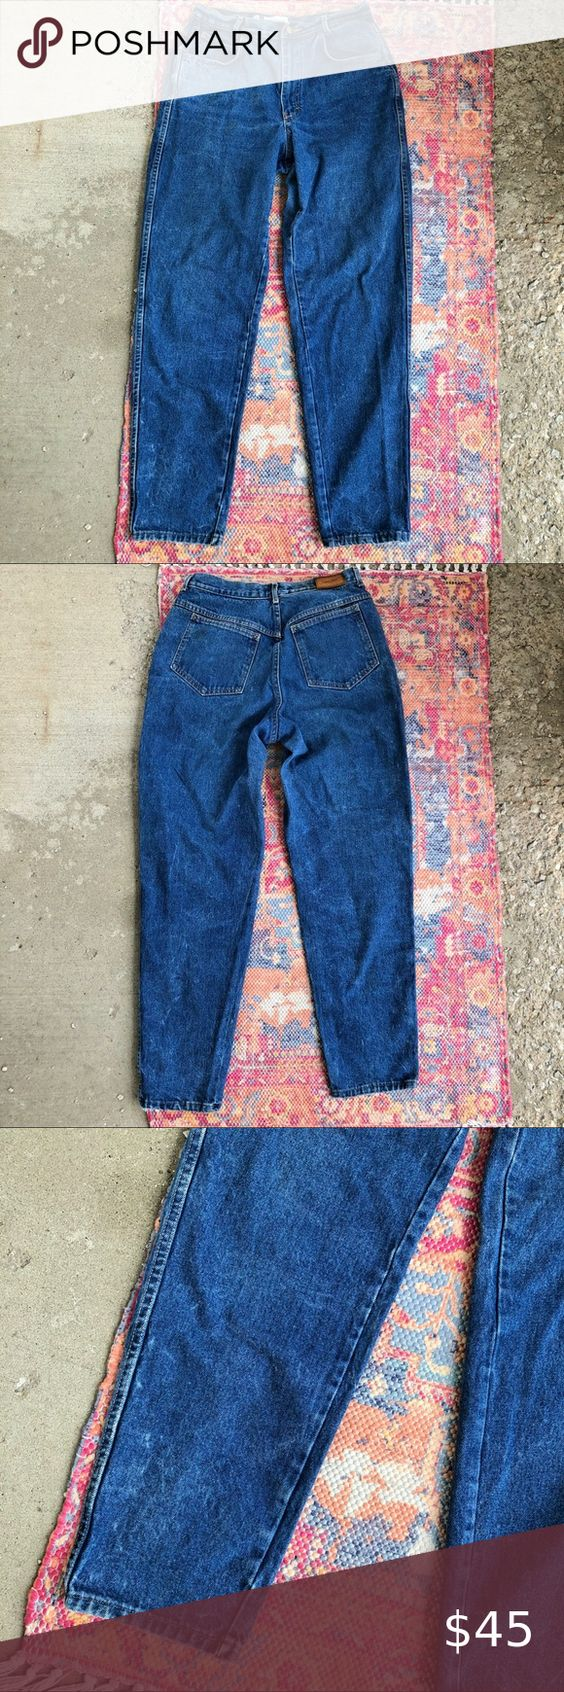 Vintage Clavin Klein High Waisted Mom Jeans Vintage Clavin Klein High Waisted Mom Jeans Tapered Leg Leather Ta High Waisted Mom Jeans Mom Jeans Women Jeans [ 1692 x 564 Pixel ]